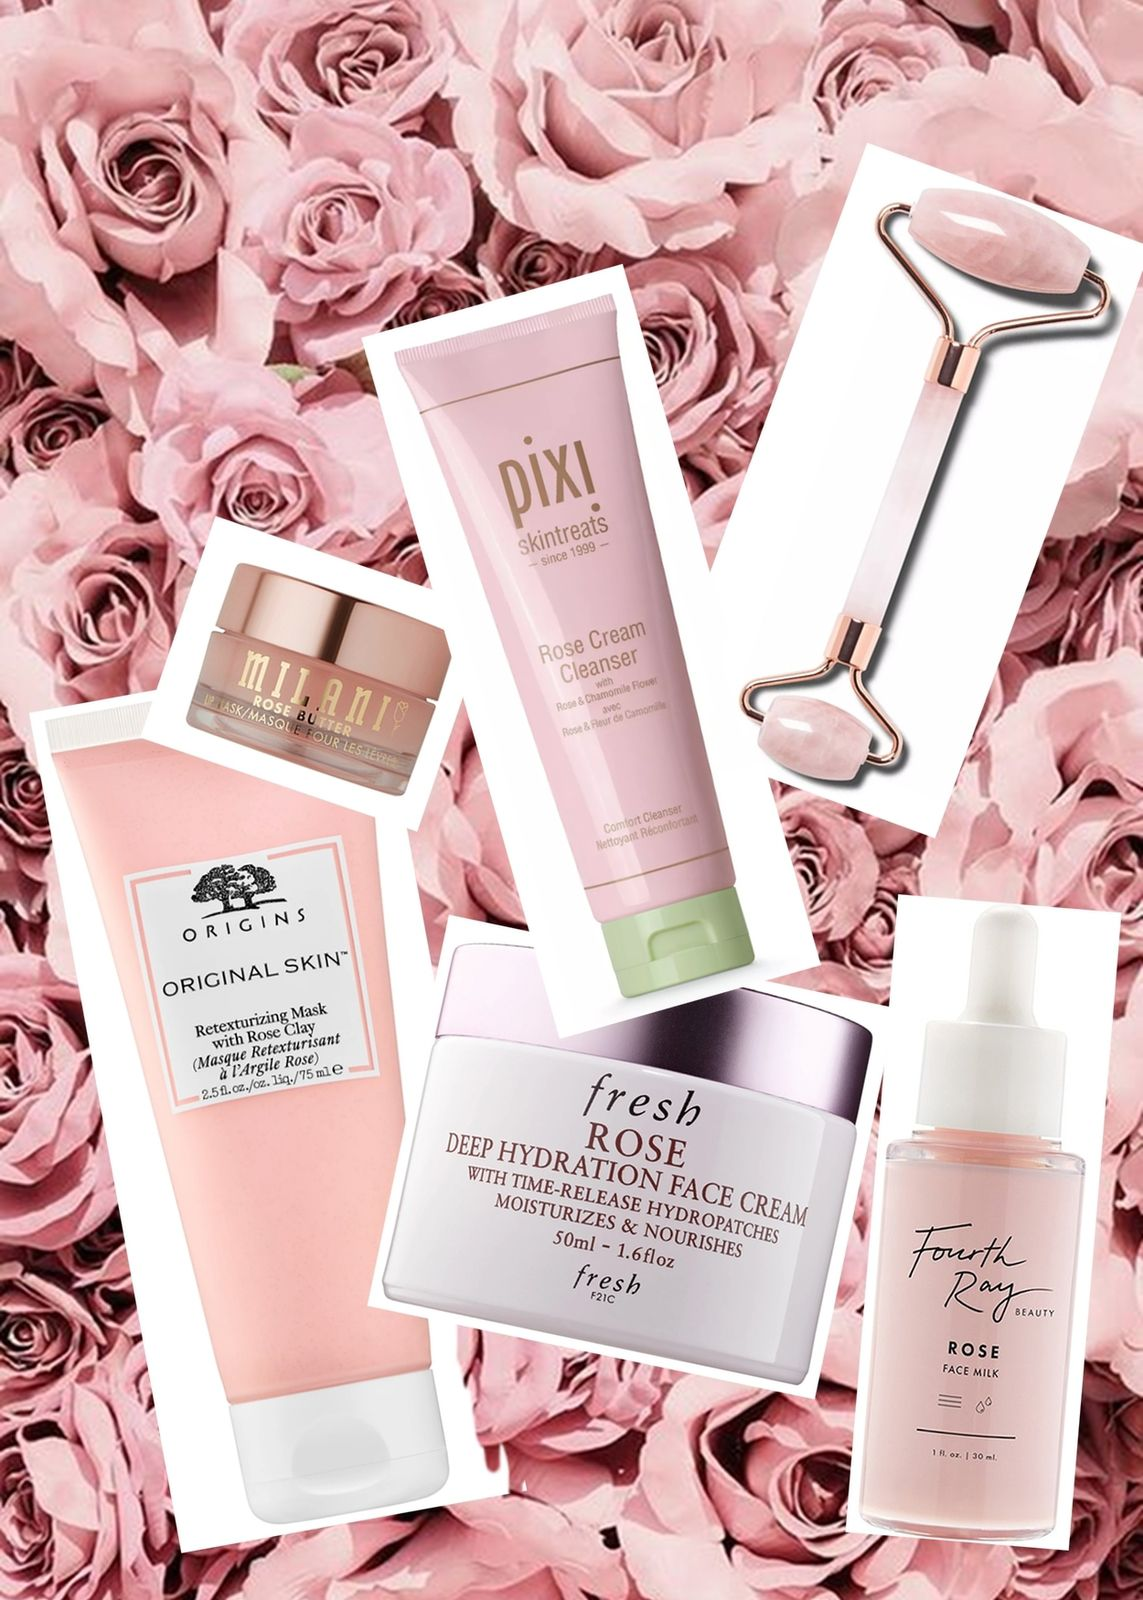 FIND COMFORT WITH ROSE SCENTED SKINCARE